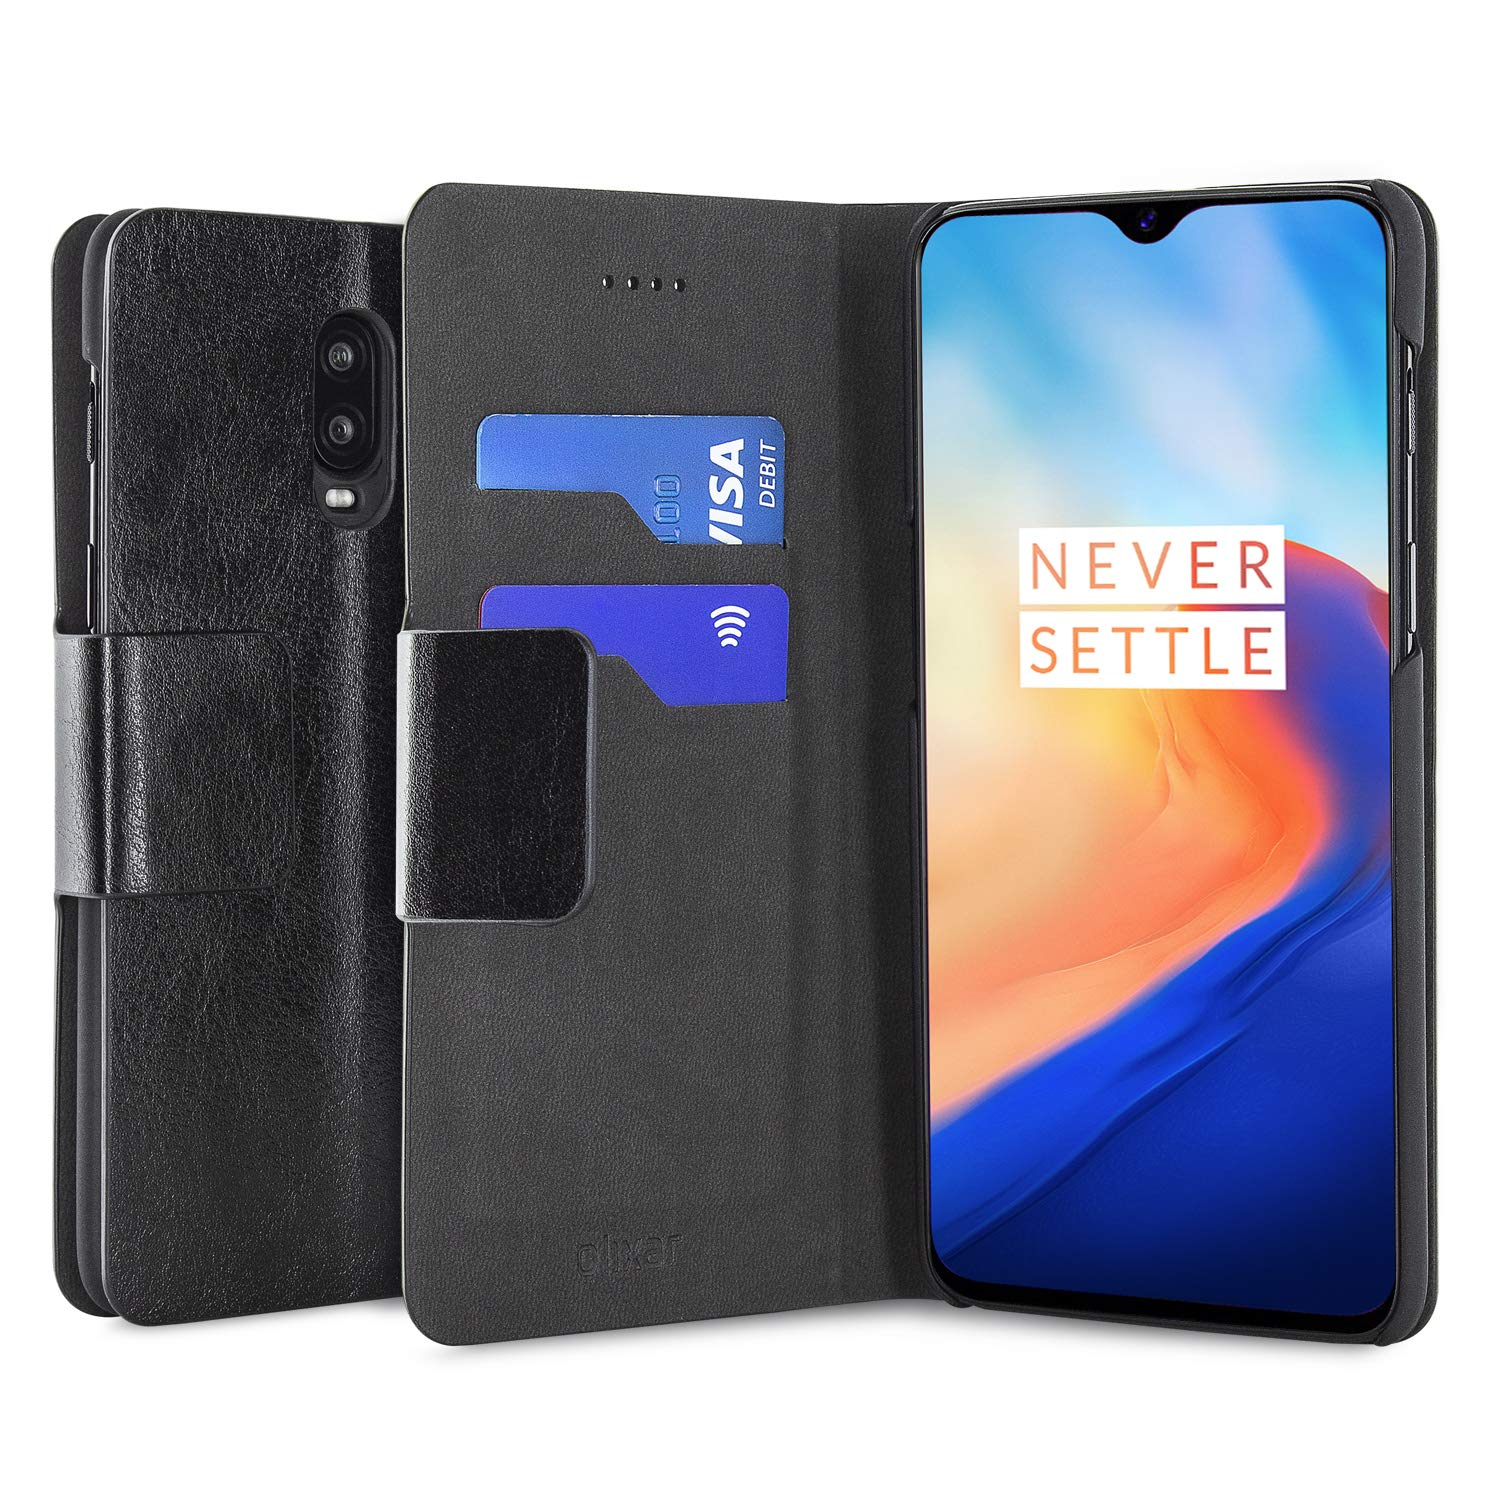 watch a6411 ca7de Amazon.com: Olixar OnePlus 6T Wallet Case - PU Leather Style ...